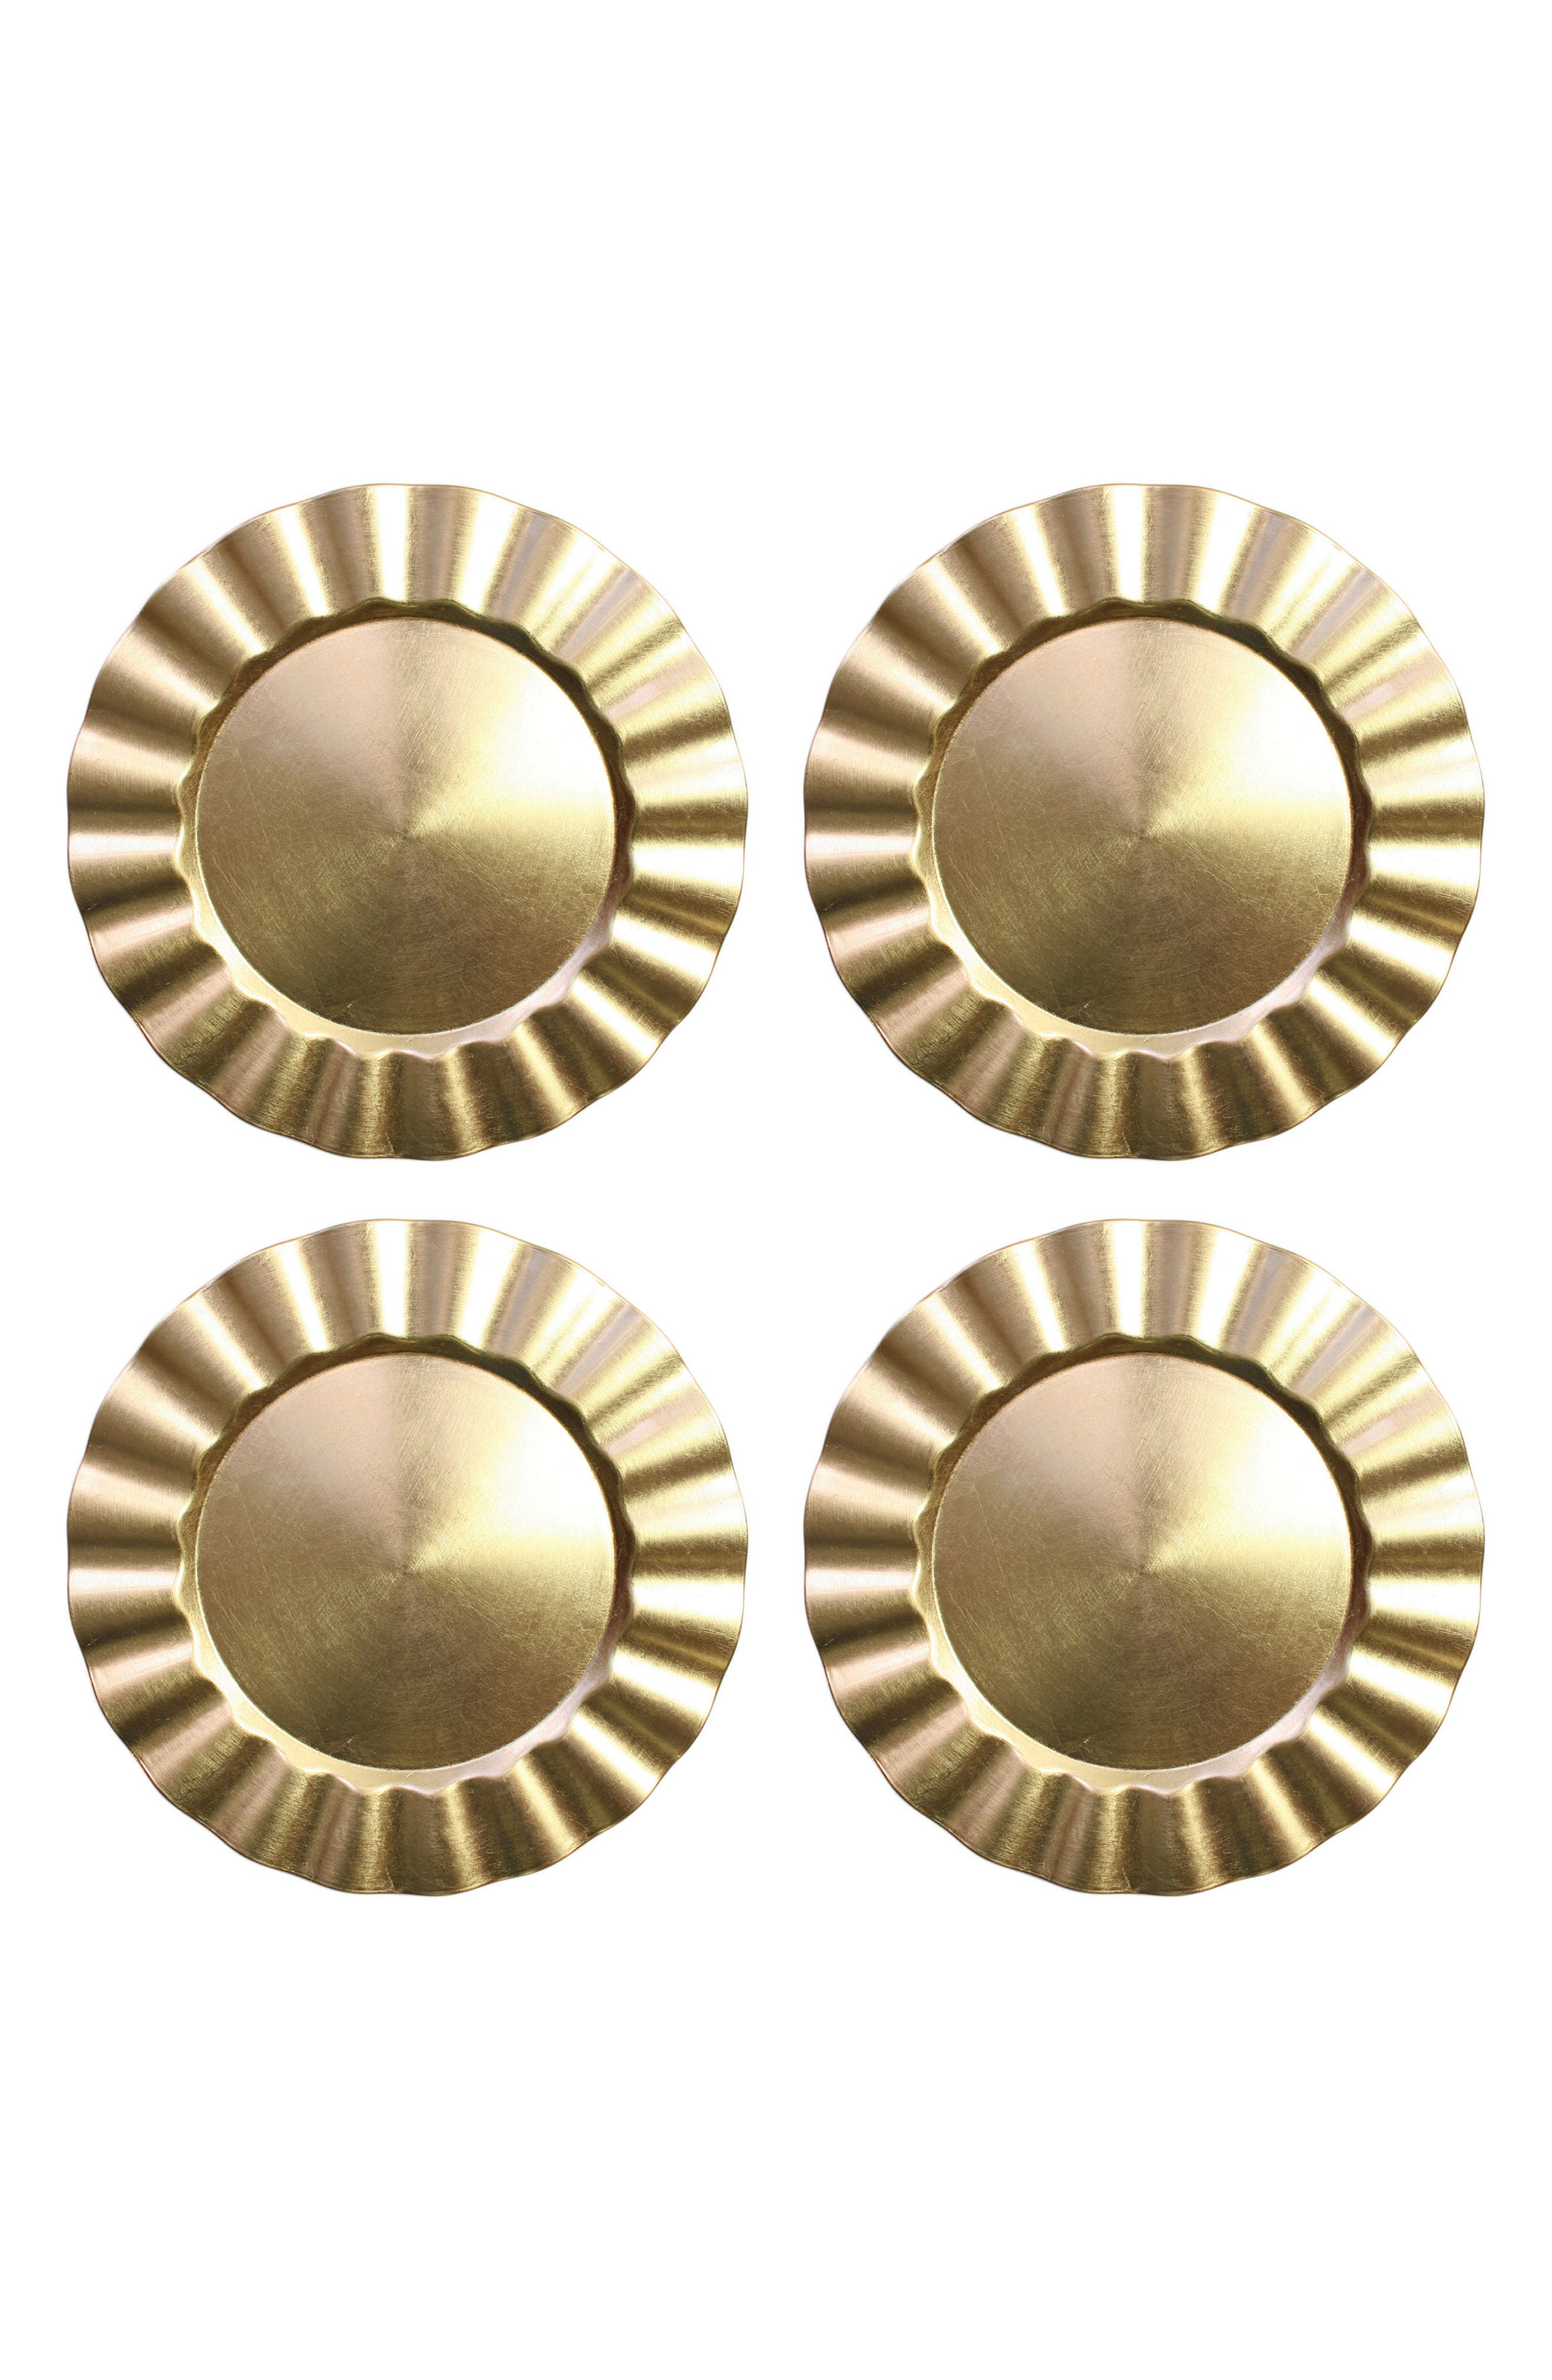 Set of 4 Round Ruffled Charger Plates,                         Main,                         color, Metallic Gold